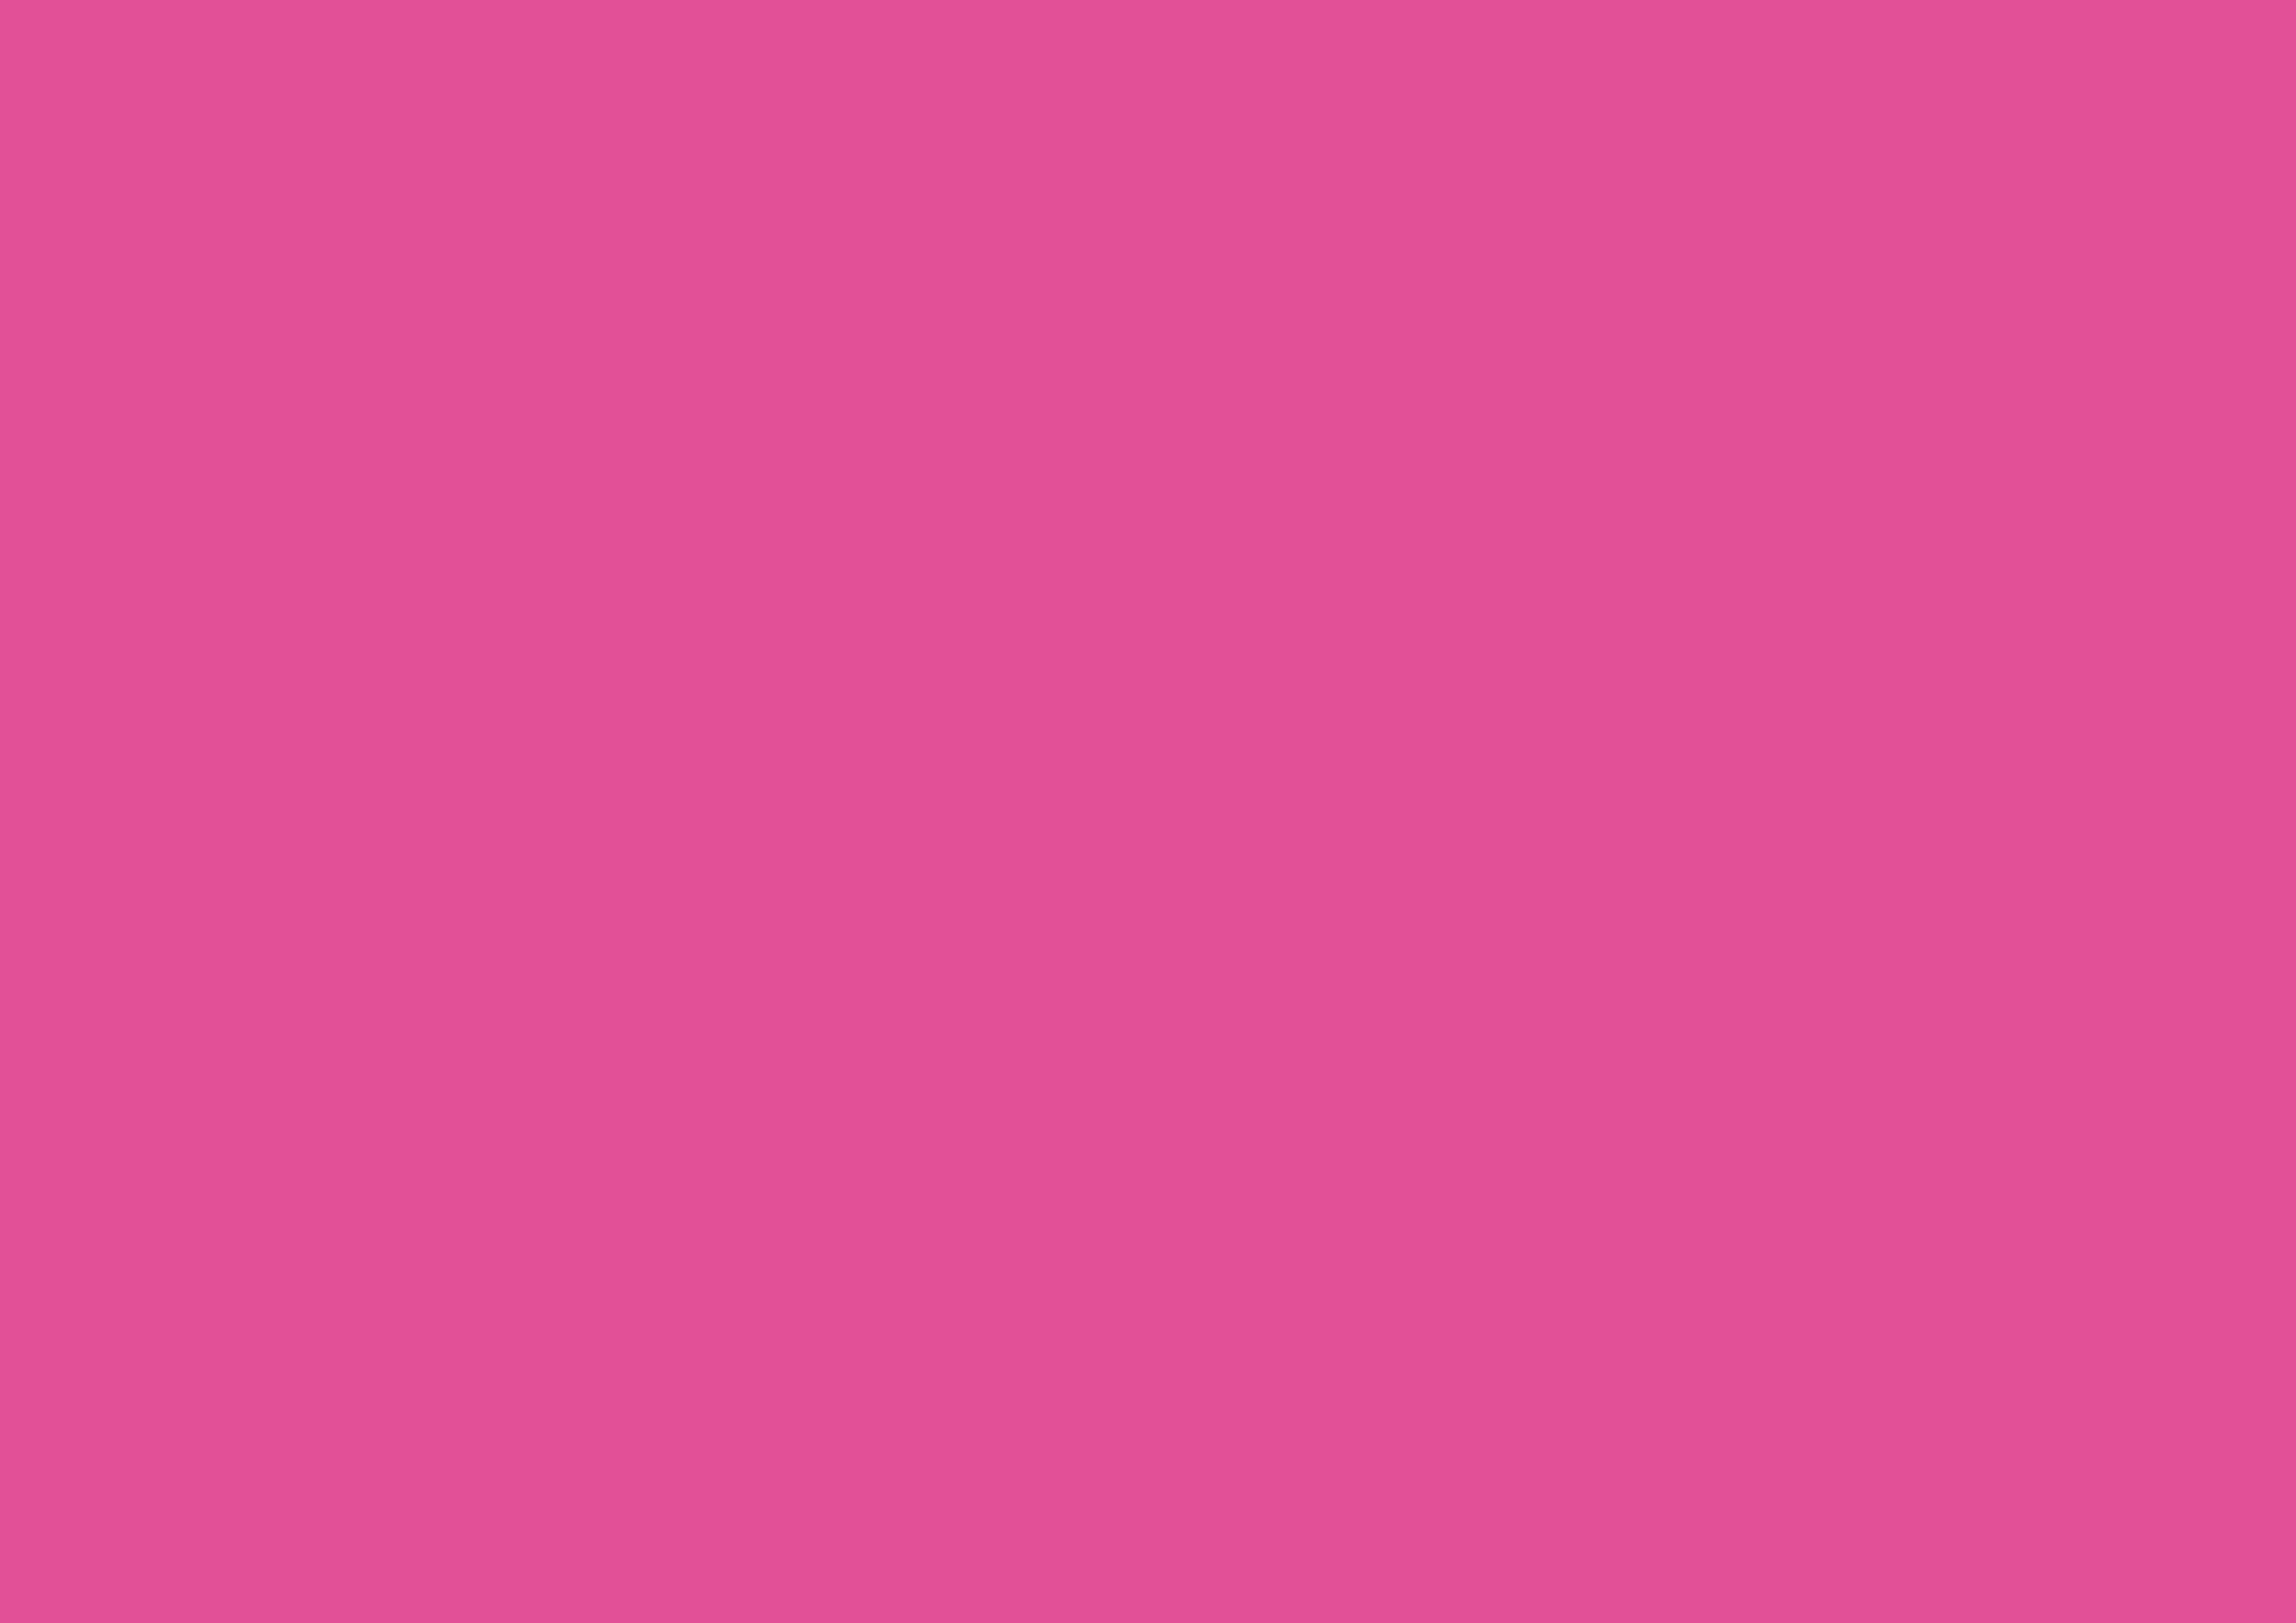 3508x2480 Raspberry Pink Solid Color Background